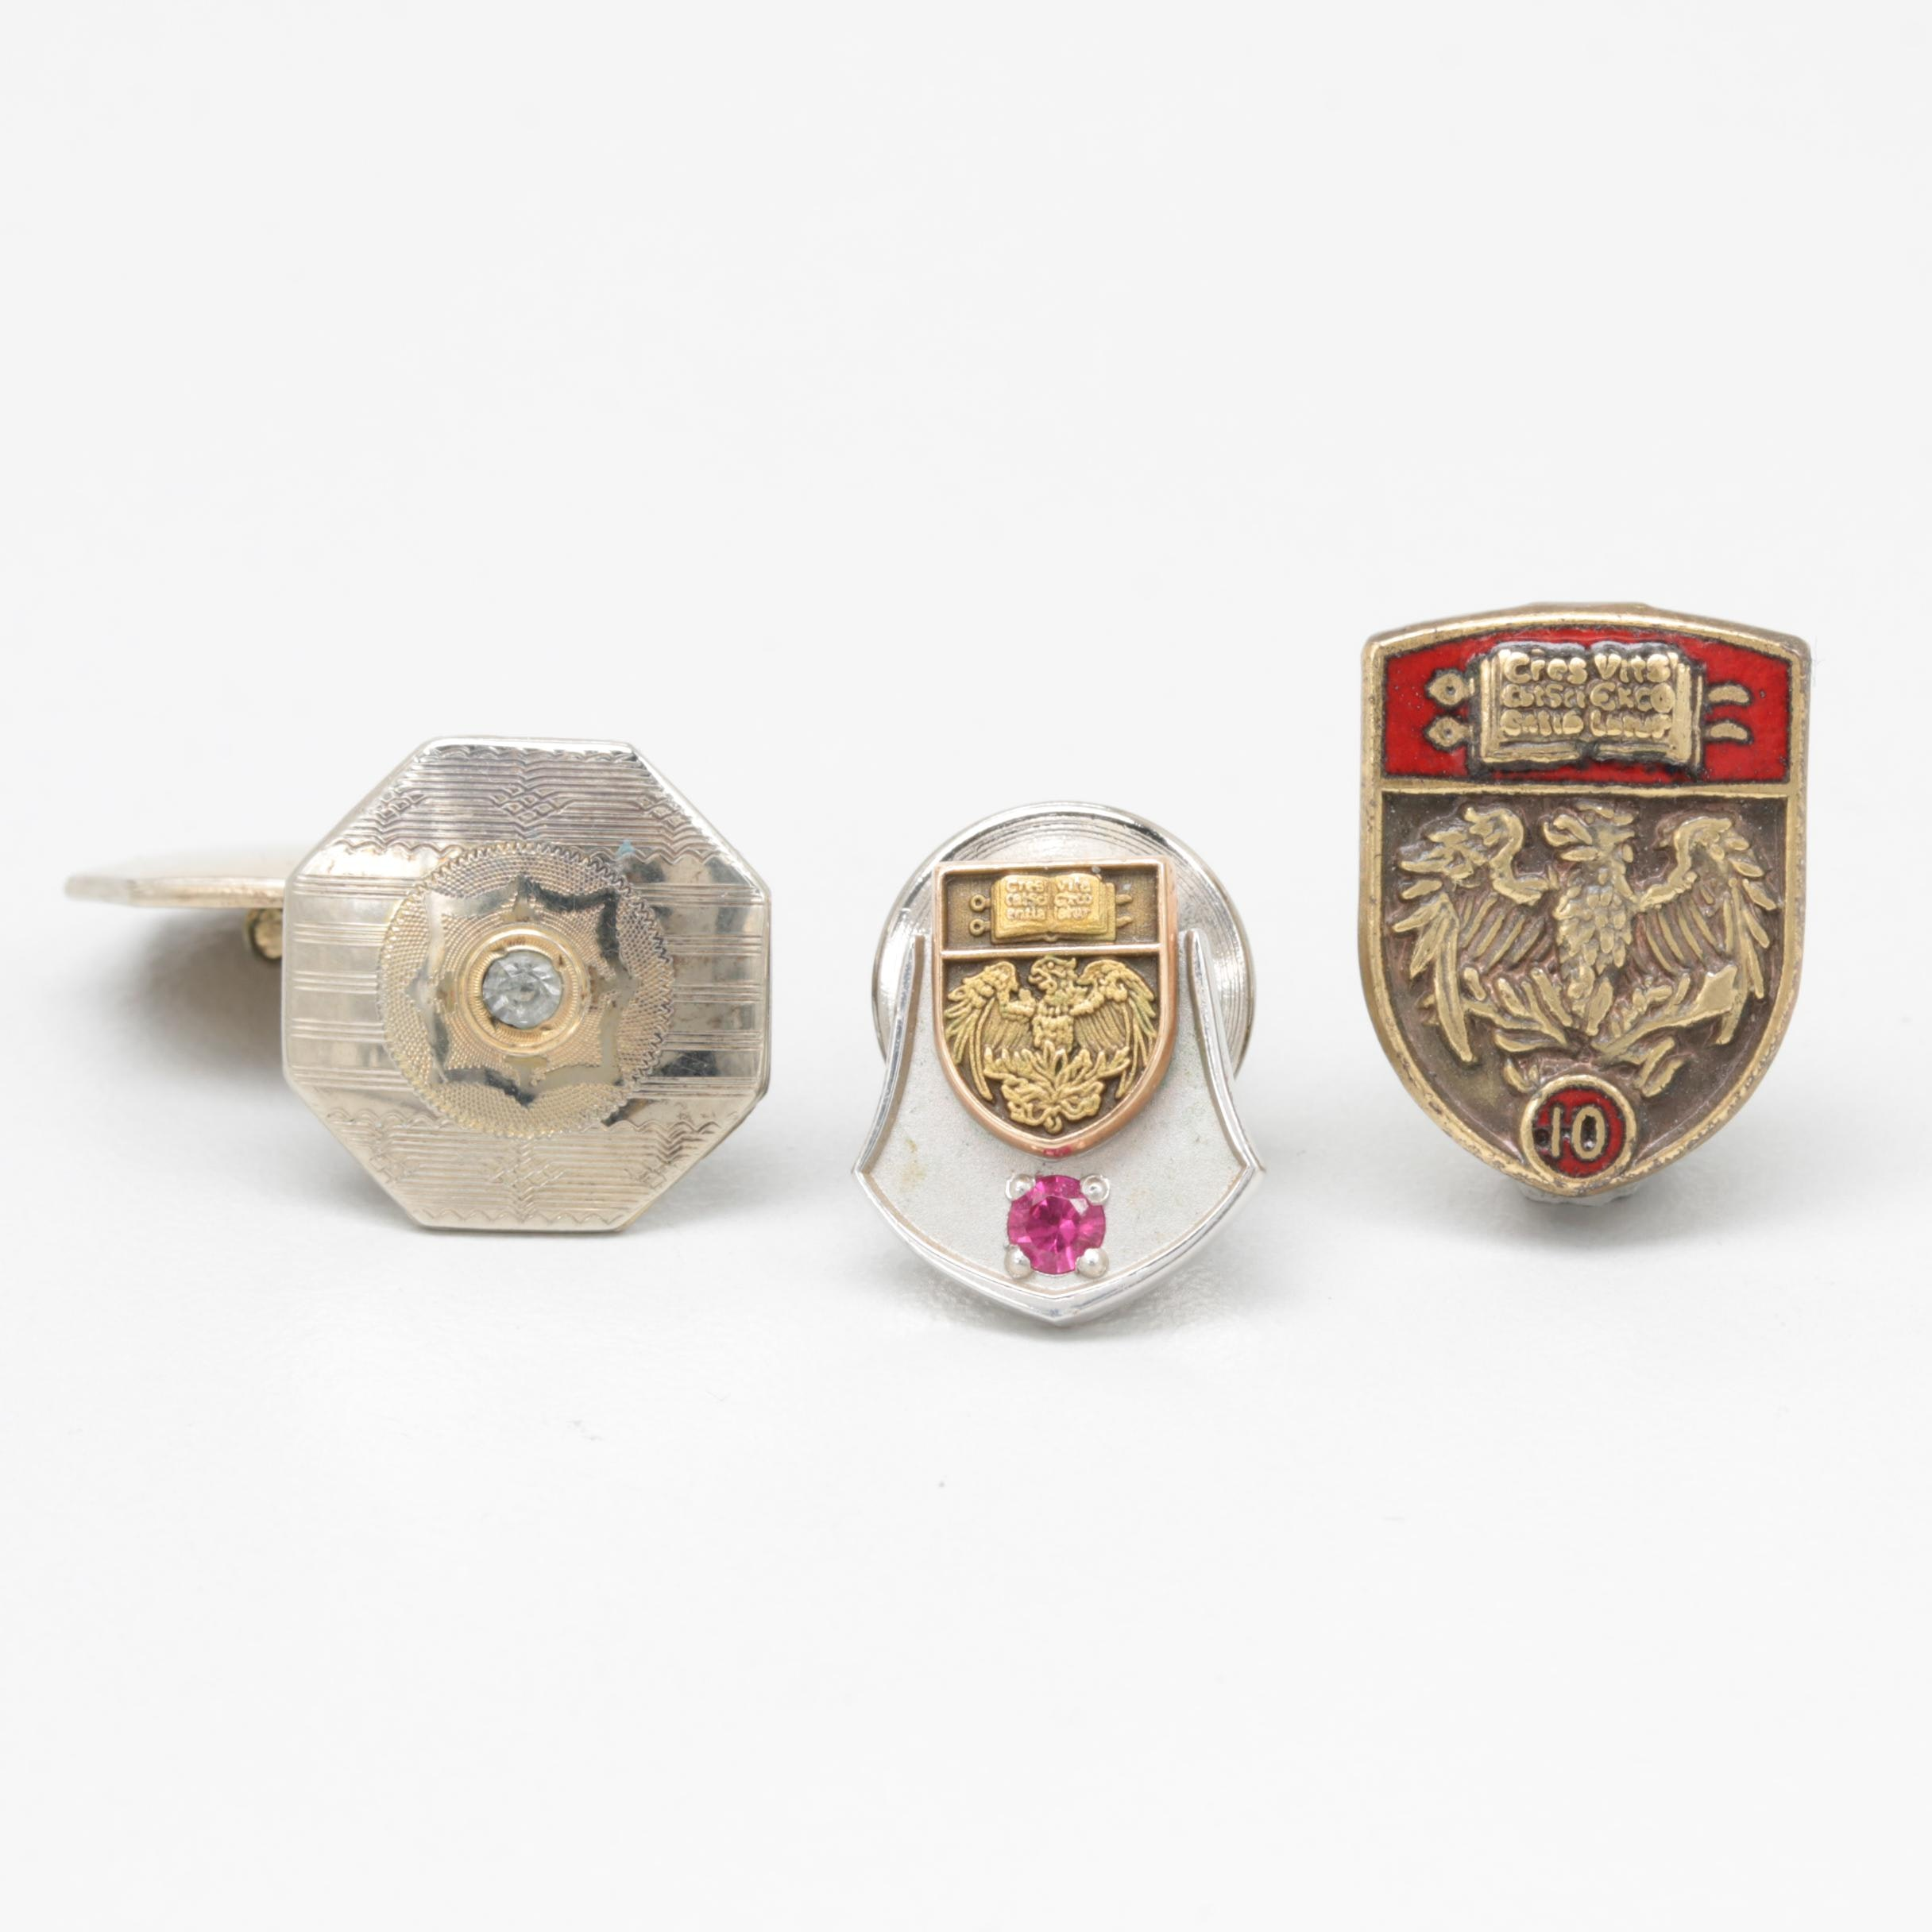 University of Chicago Lapel Pins and Cuff Link Including 10K Gold